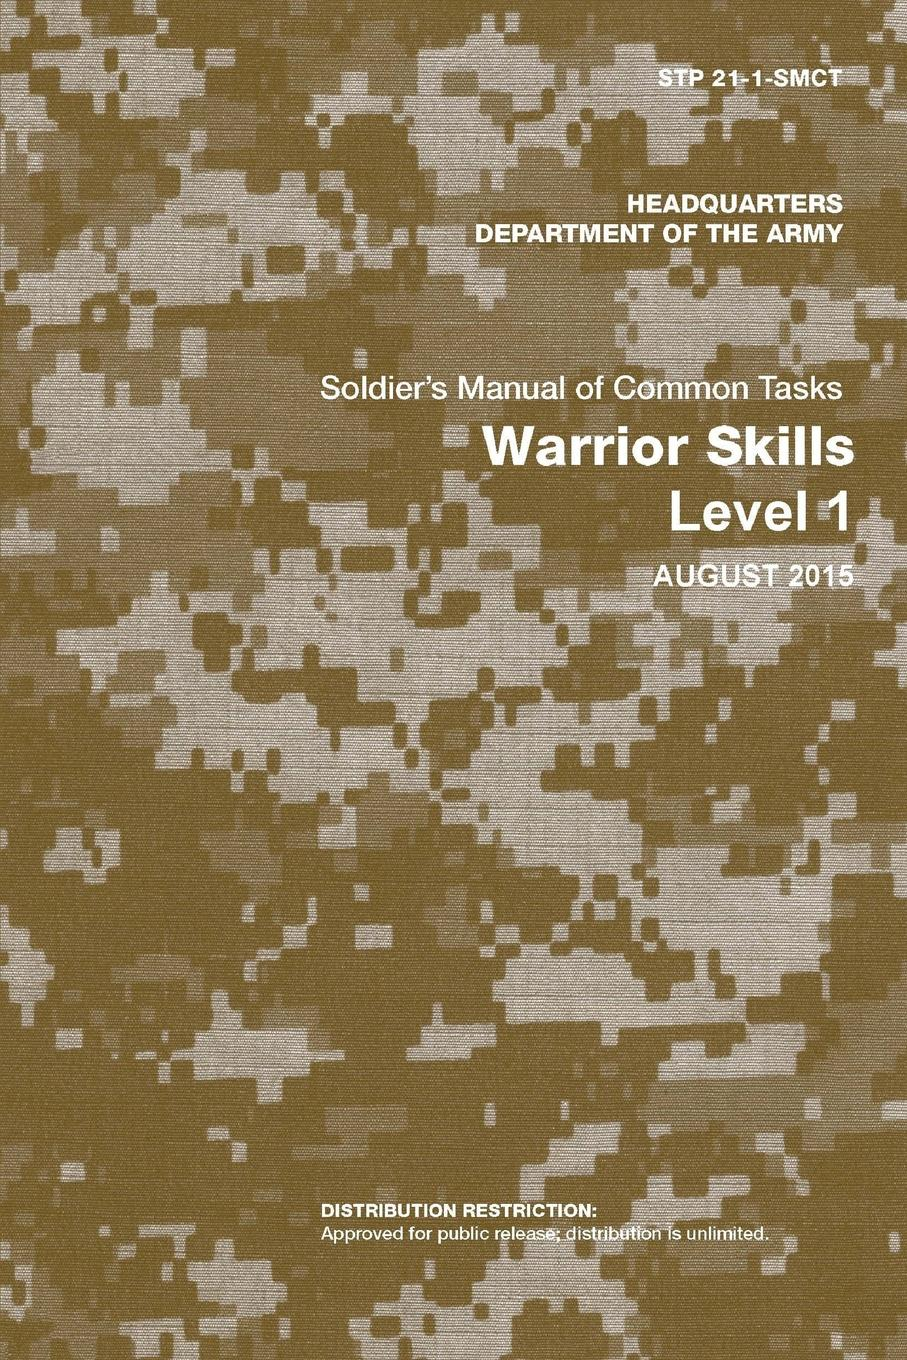 Department of the Army Soldier.s Manual of Common Tasks. Warrior Skills Level 1 (STP 21-1-SMCT) (August 2015 Edition) manual of the warrior of light